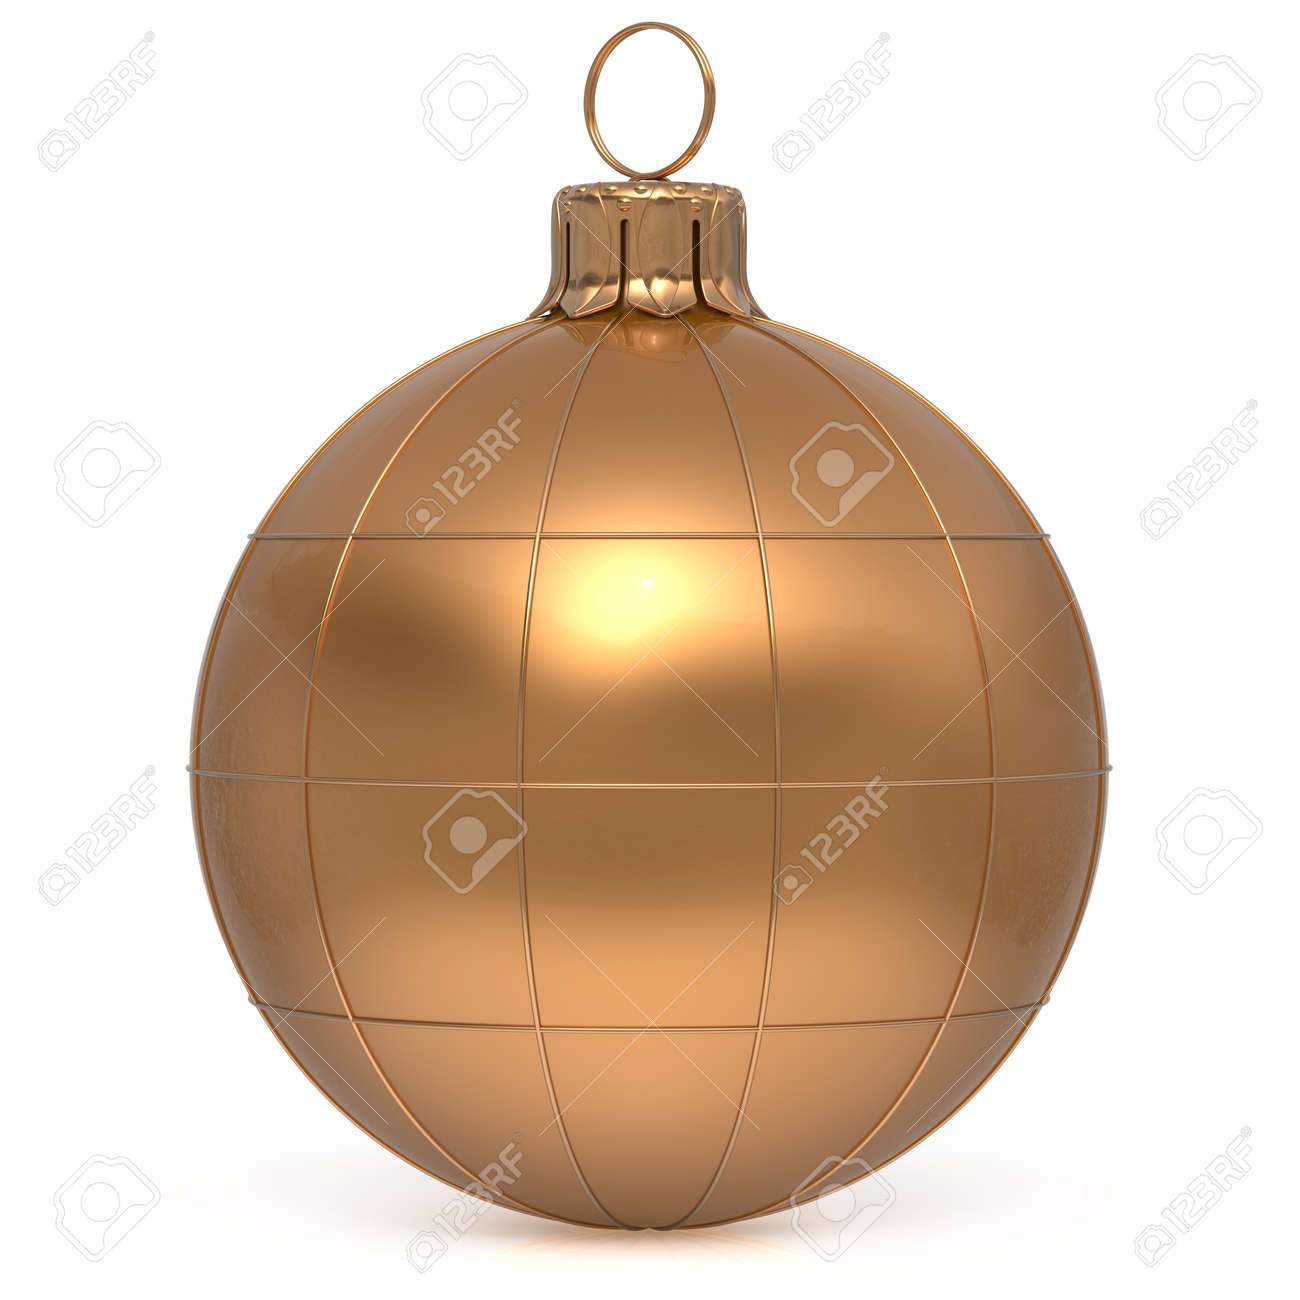 World globe christmas ornaments - Christmas Ball New Year S Eve Decoration World Globe Earth Planet Bauble Golden Shiny International Wintertime Hanging